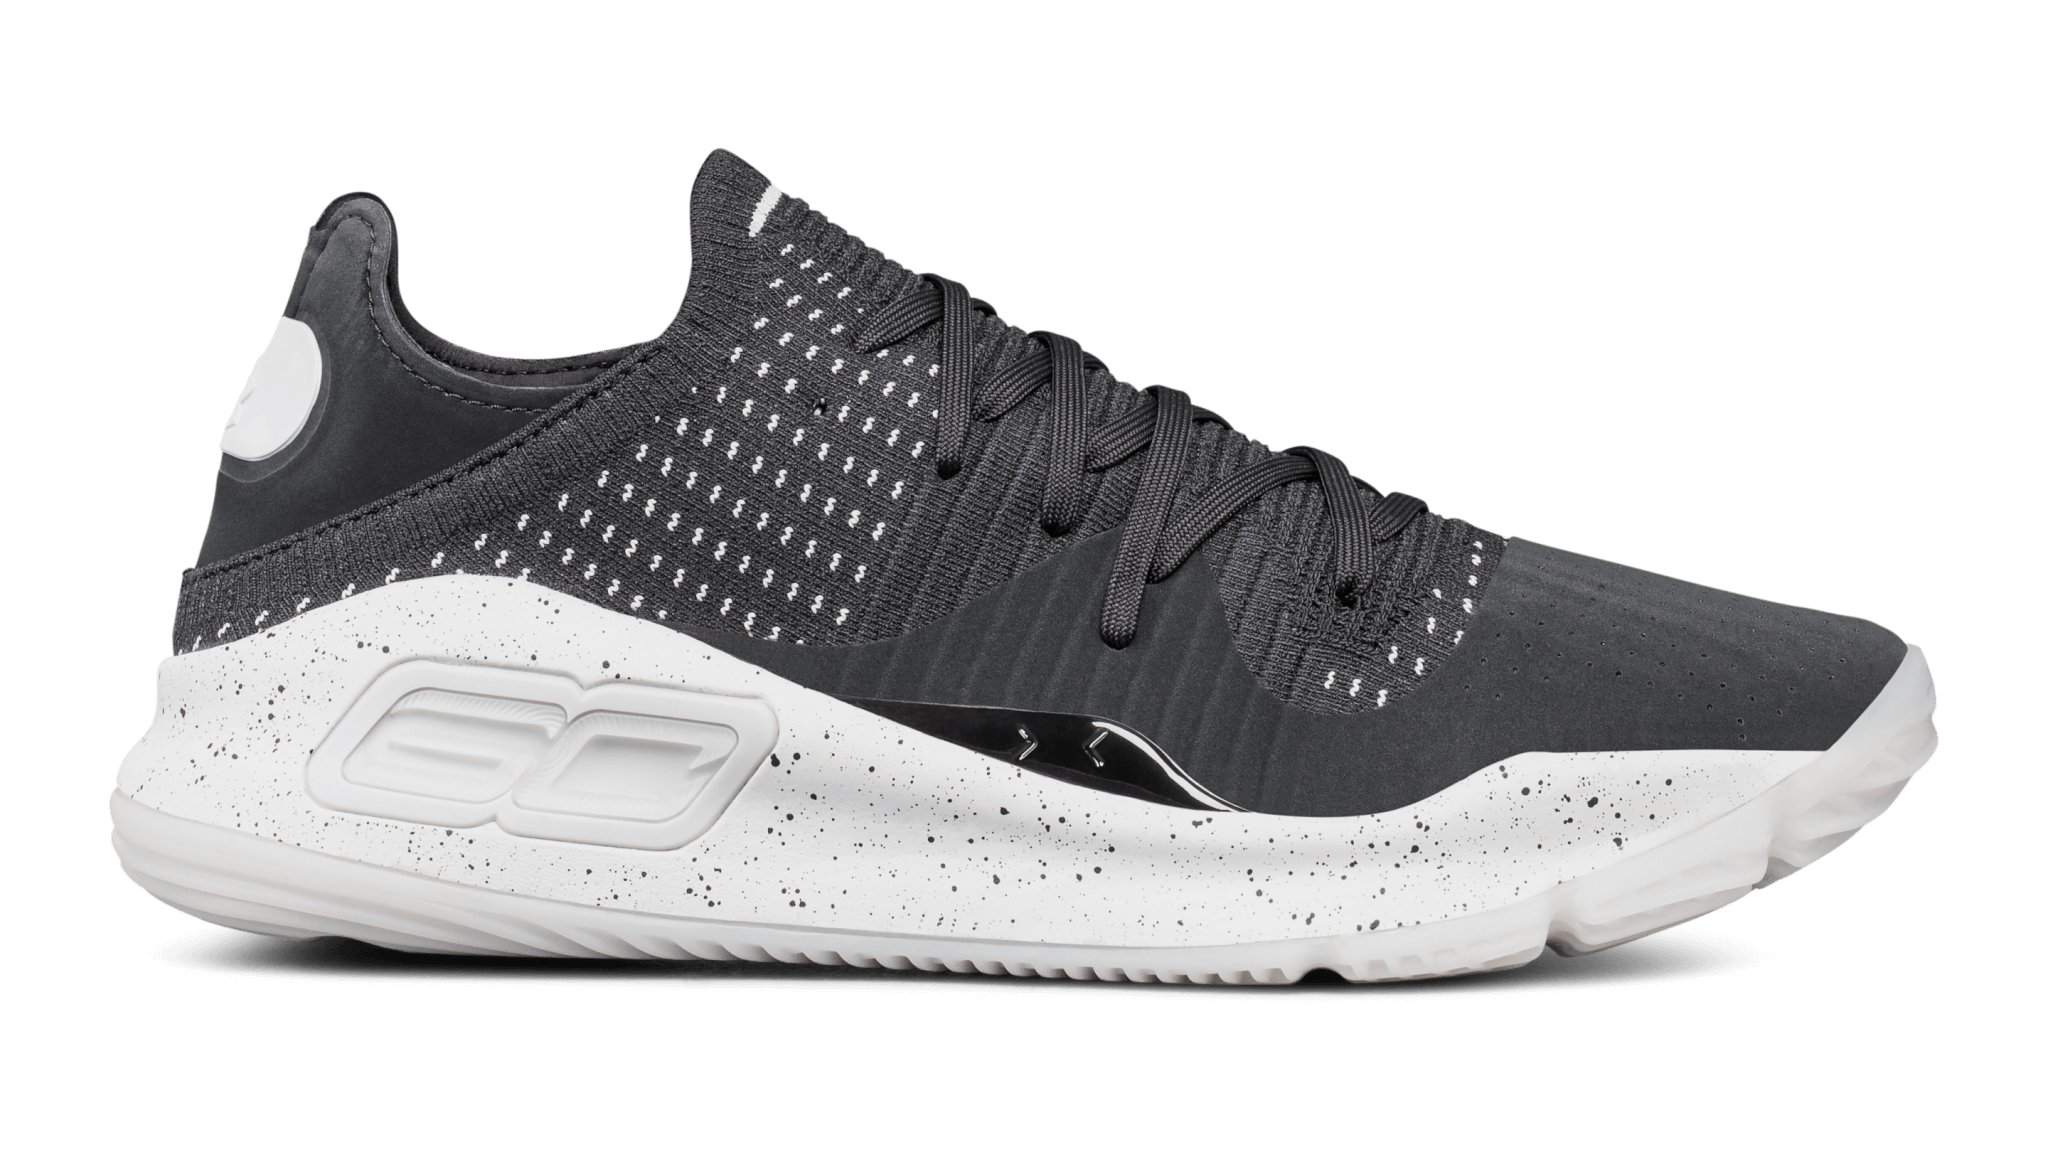 1c1a3229176 Under Armour Curry 4 Low Performance Review